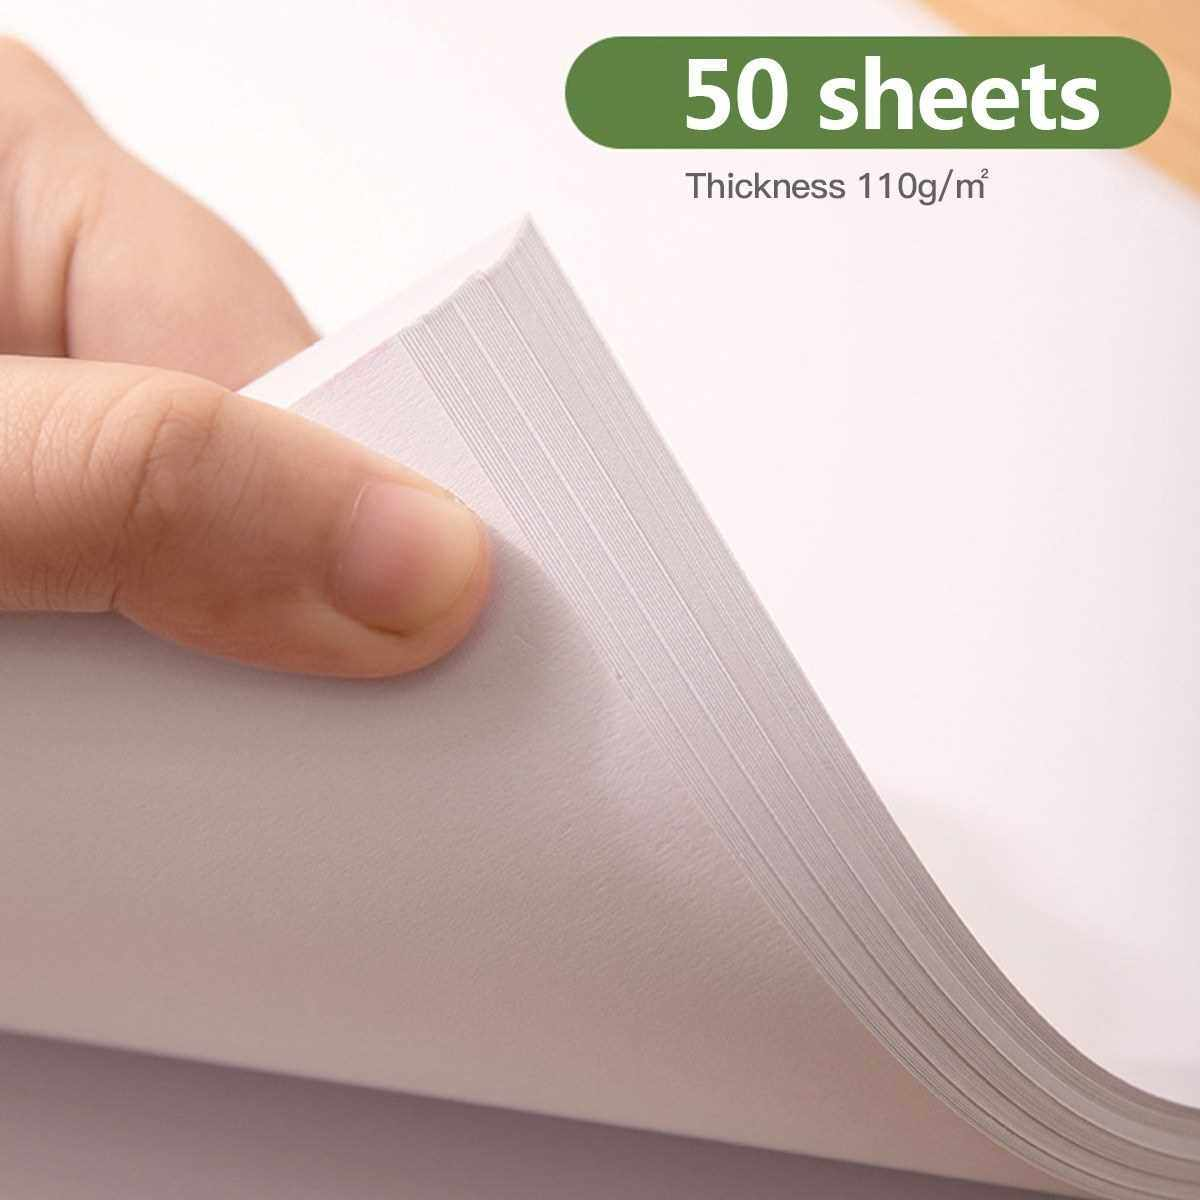 50 Sheets Loose-Leaf Sketchbook Professional A4 Art Painting Sketch Paper 8.2x11.4 Inch for Drawing Journaling Sketching Doodling (Green)